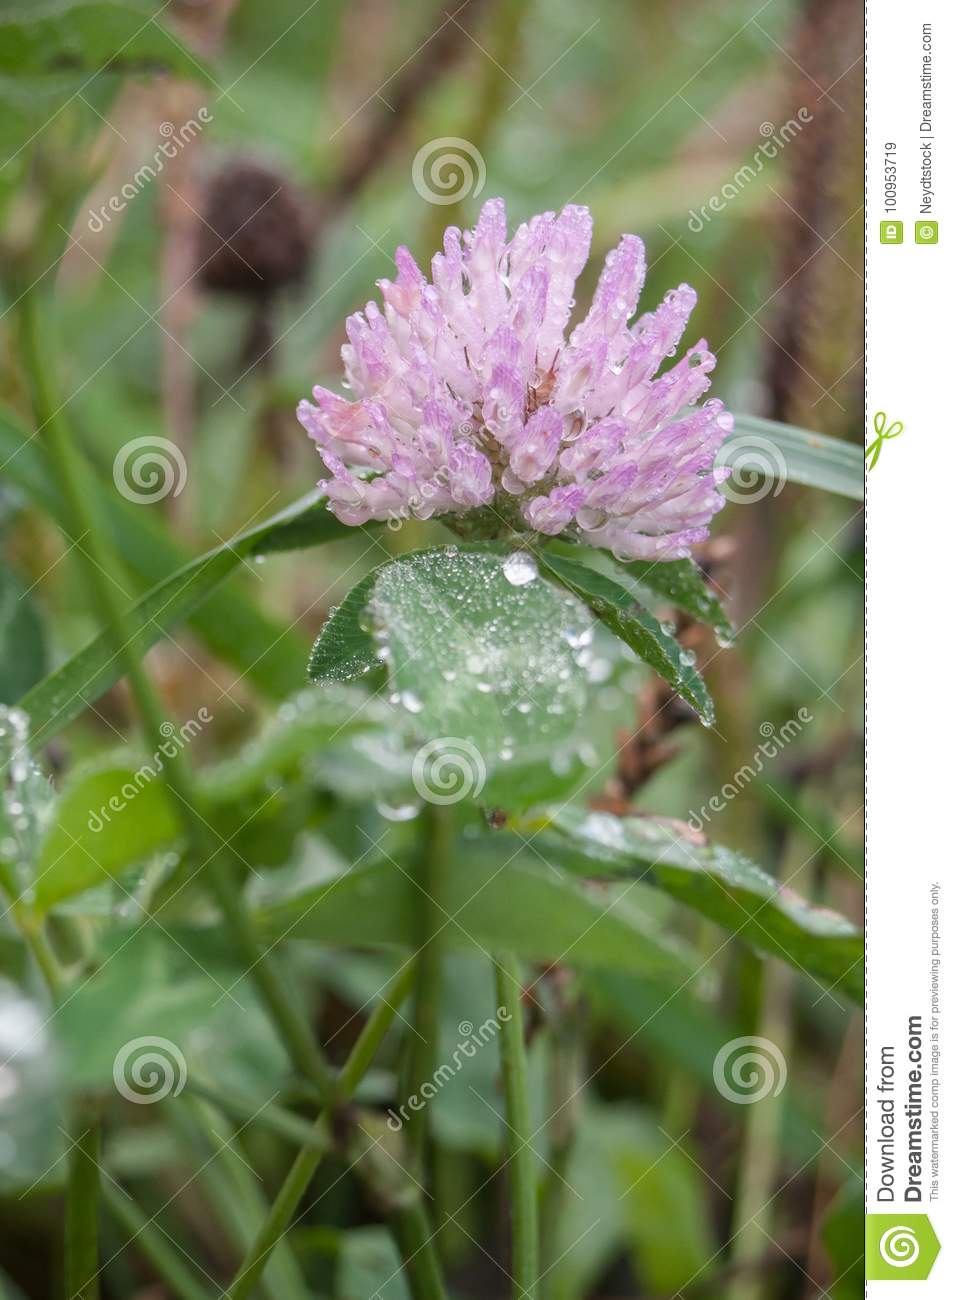 Purple Clover Flower In Grass With Small Rain Drops Stock Image